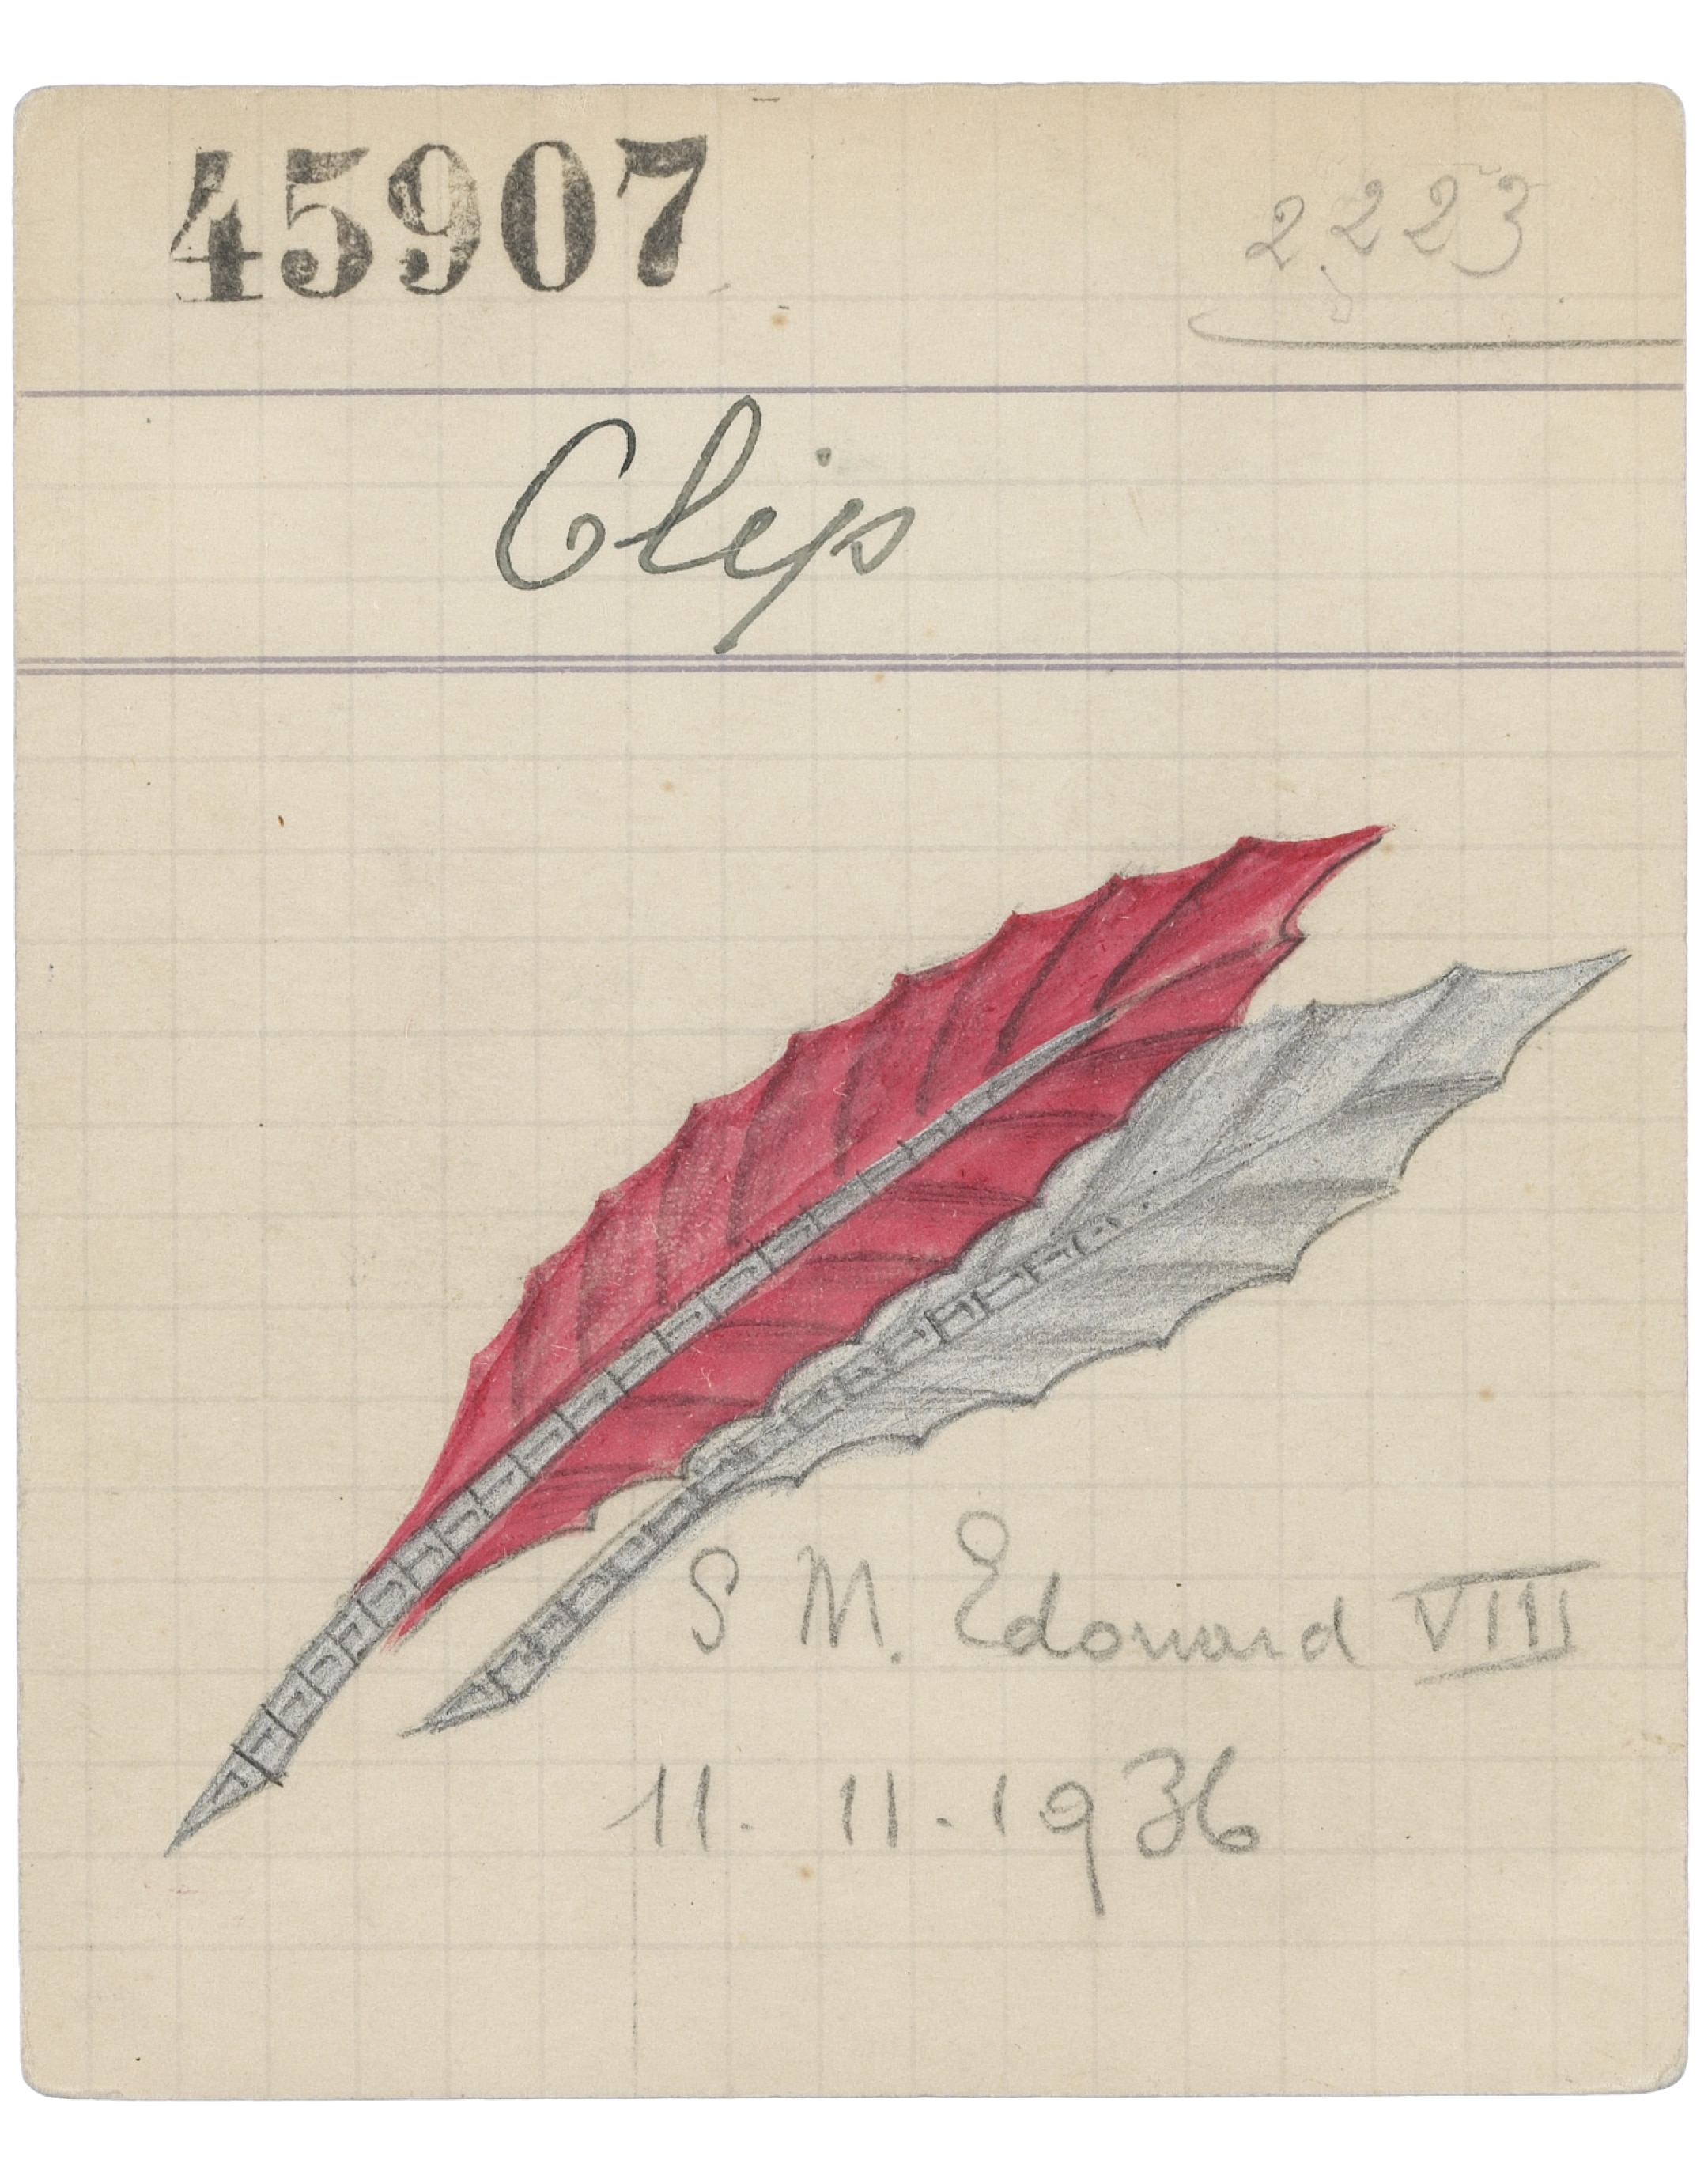 Product card of a Two Feathers clip, 1936, Van Cleef & Arpels Archives